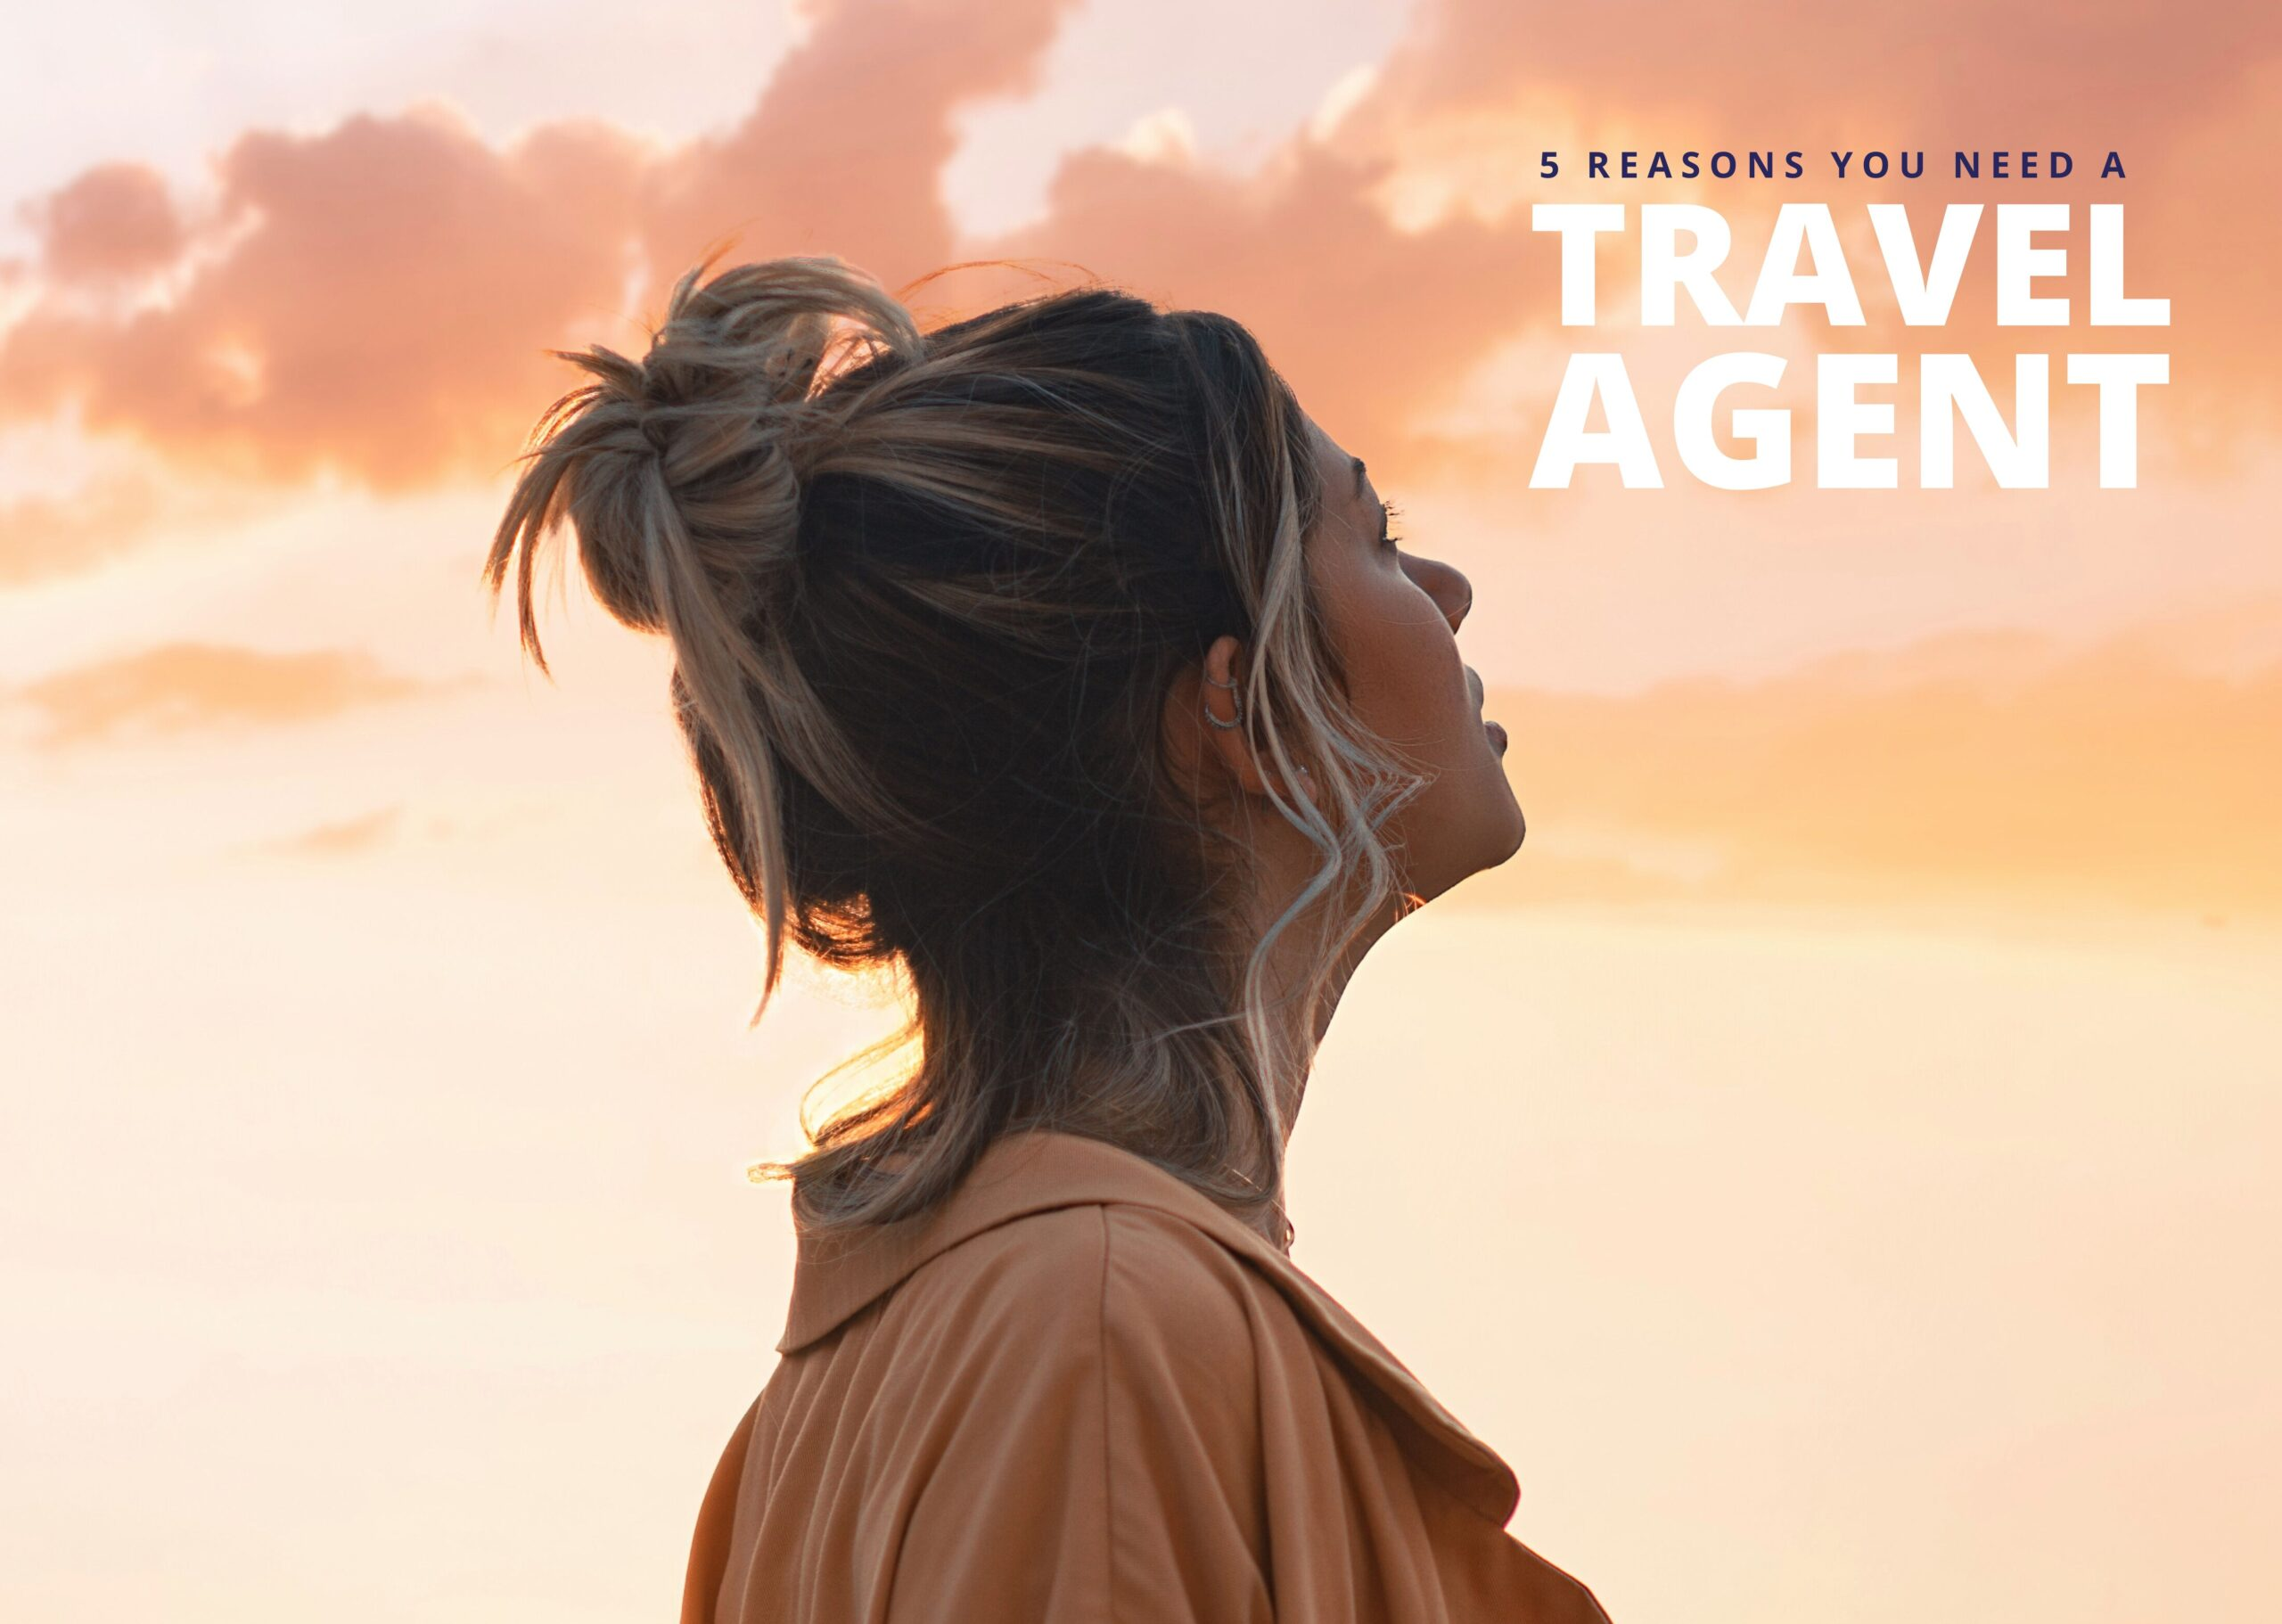 5 reasons you need a travel agent